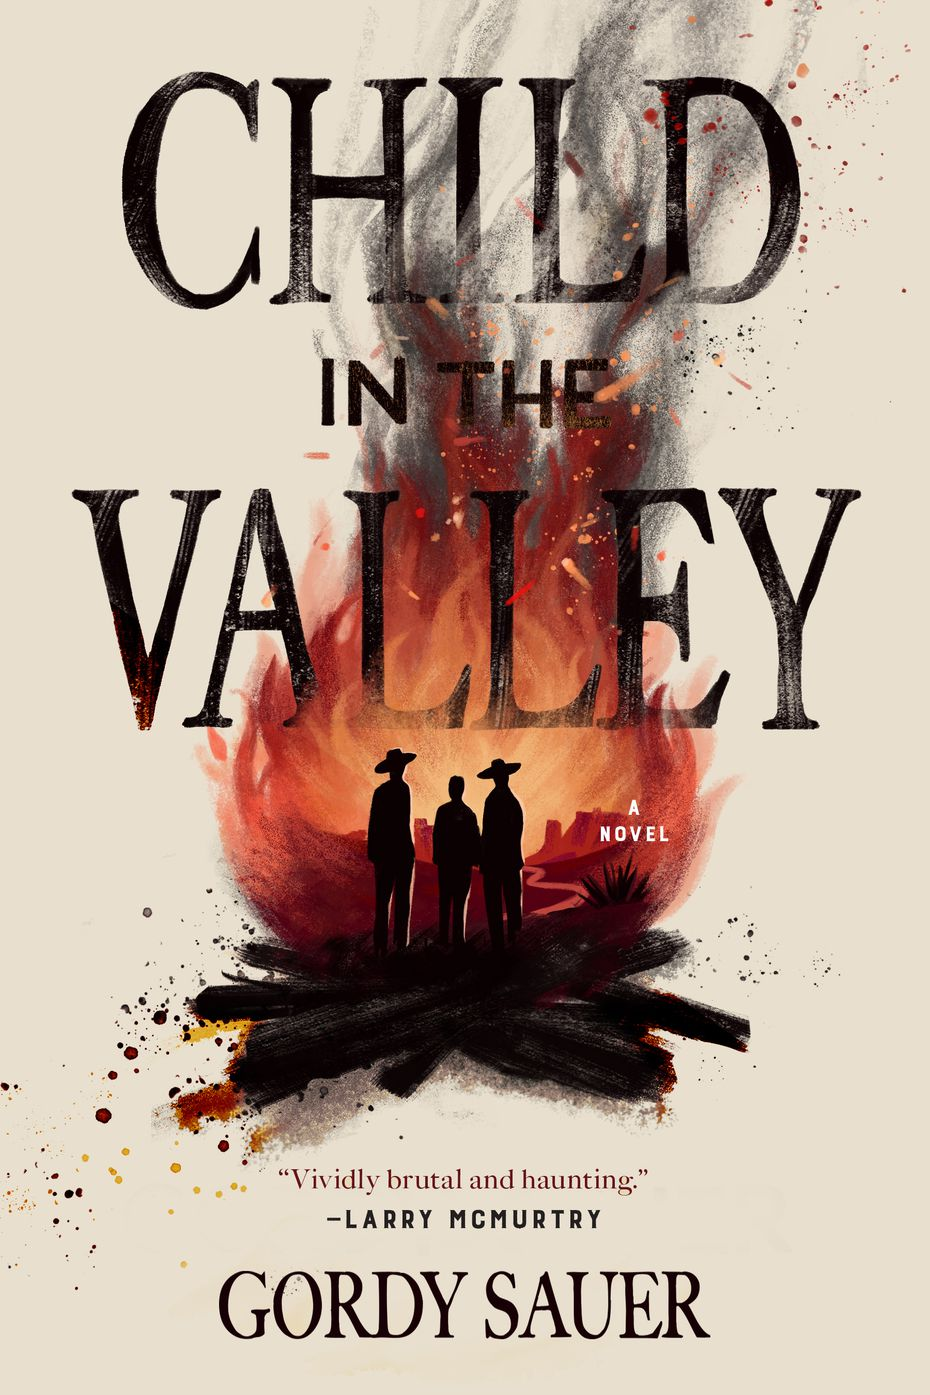 Gordy Sauer's debut novel, 'Child in the Valley,' possesses a charged emotional power.